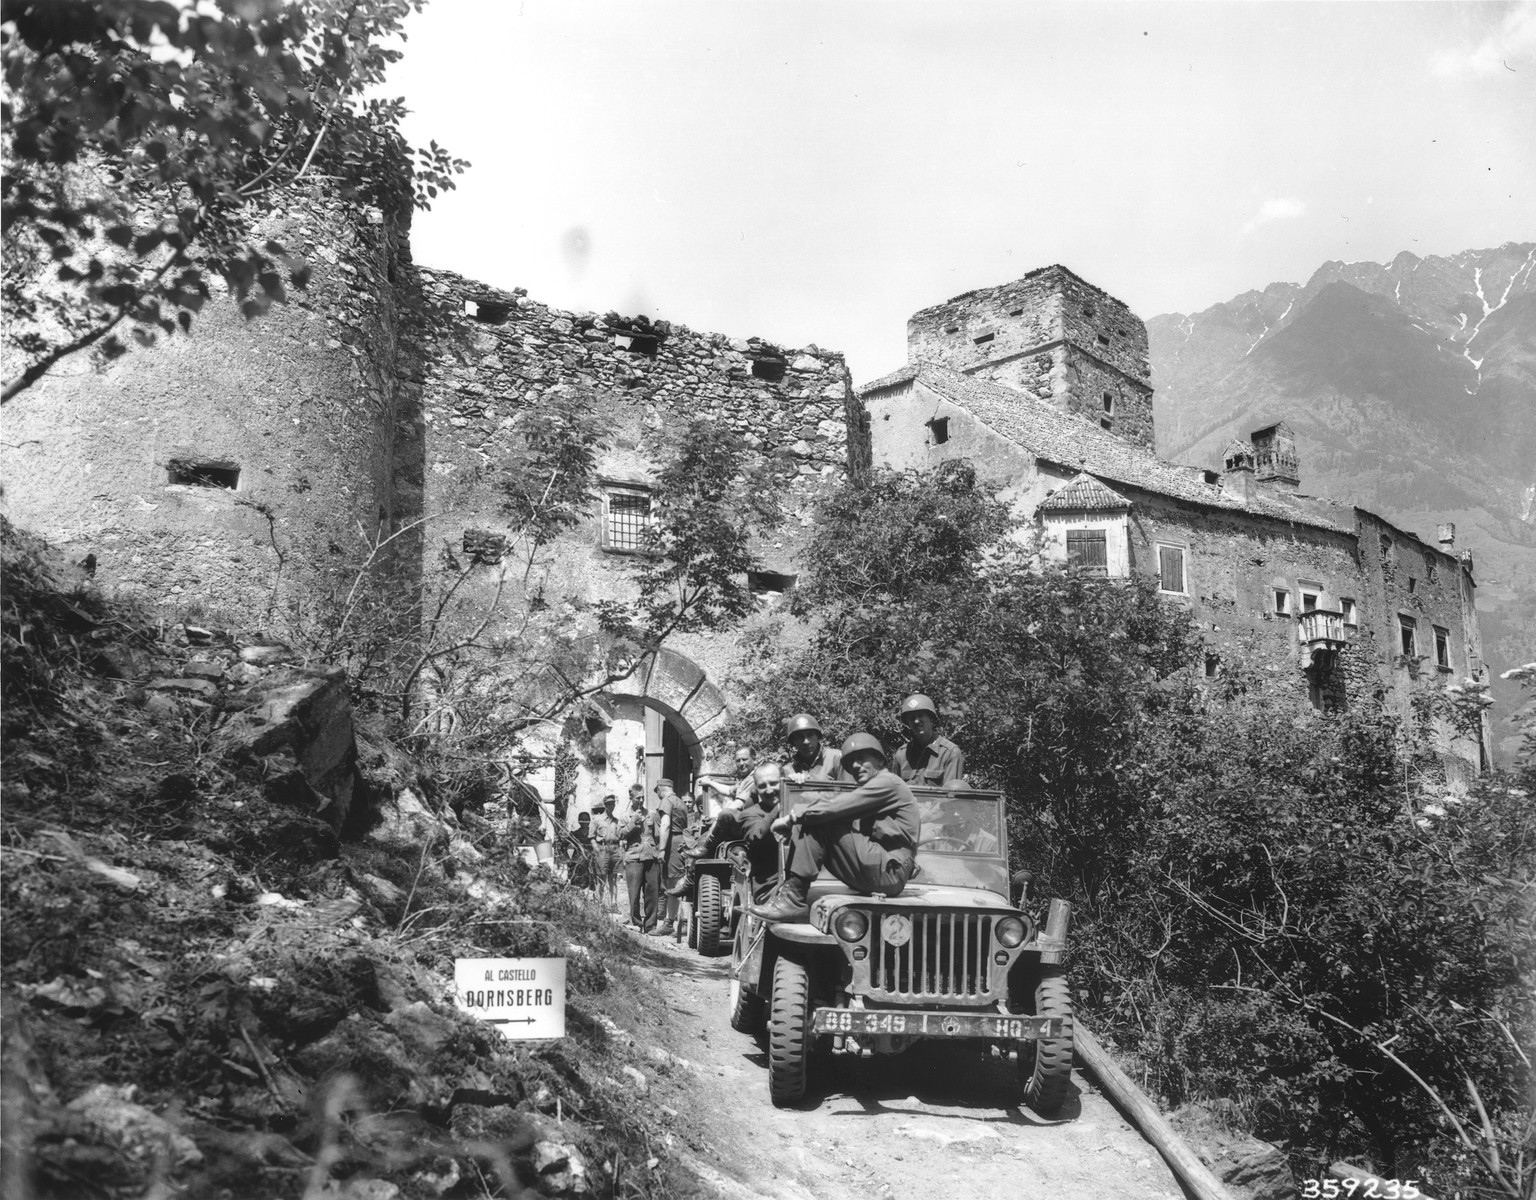 Officers of the Fifth U.S. Army prepare to leave Dornsberg castle after having found large quantities of silk, wool and other goods looted by the Nazis.  Doctor van Hartner, an alleged representative of the International Red Cross from Budapest who is guiding the Americans to places where looted items have been hidden, is seated in the first jeep.